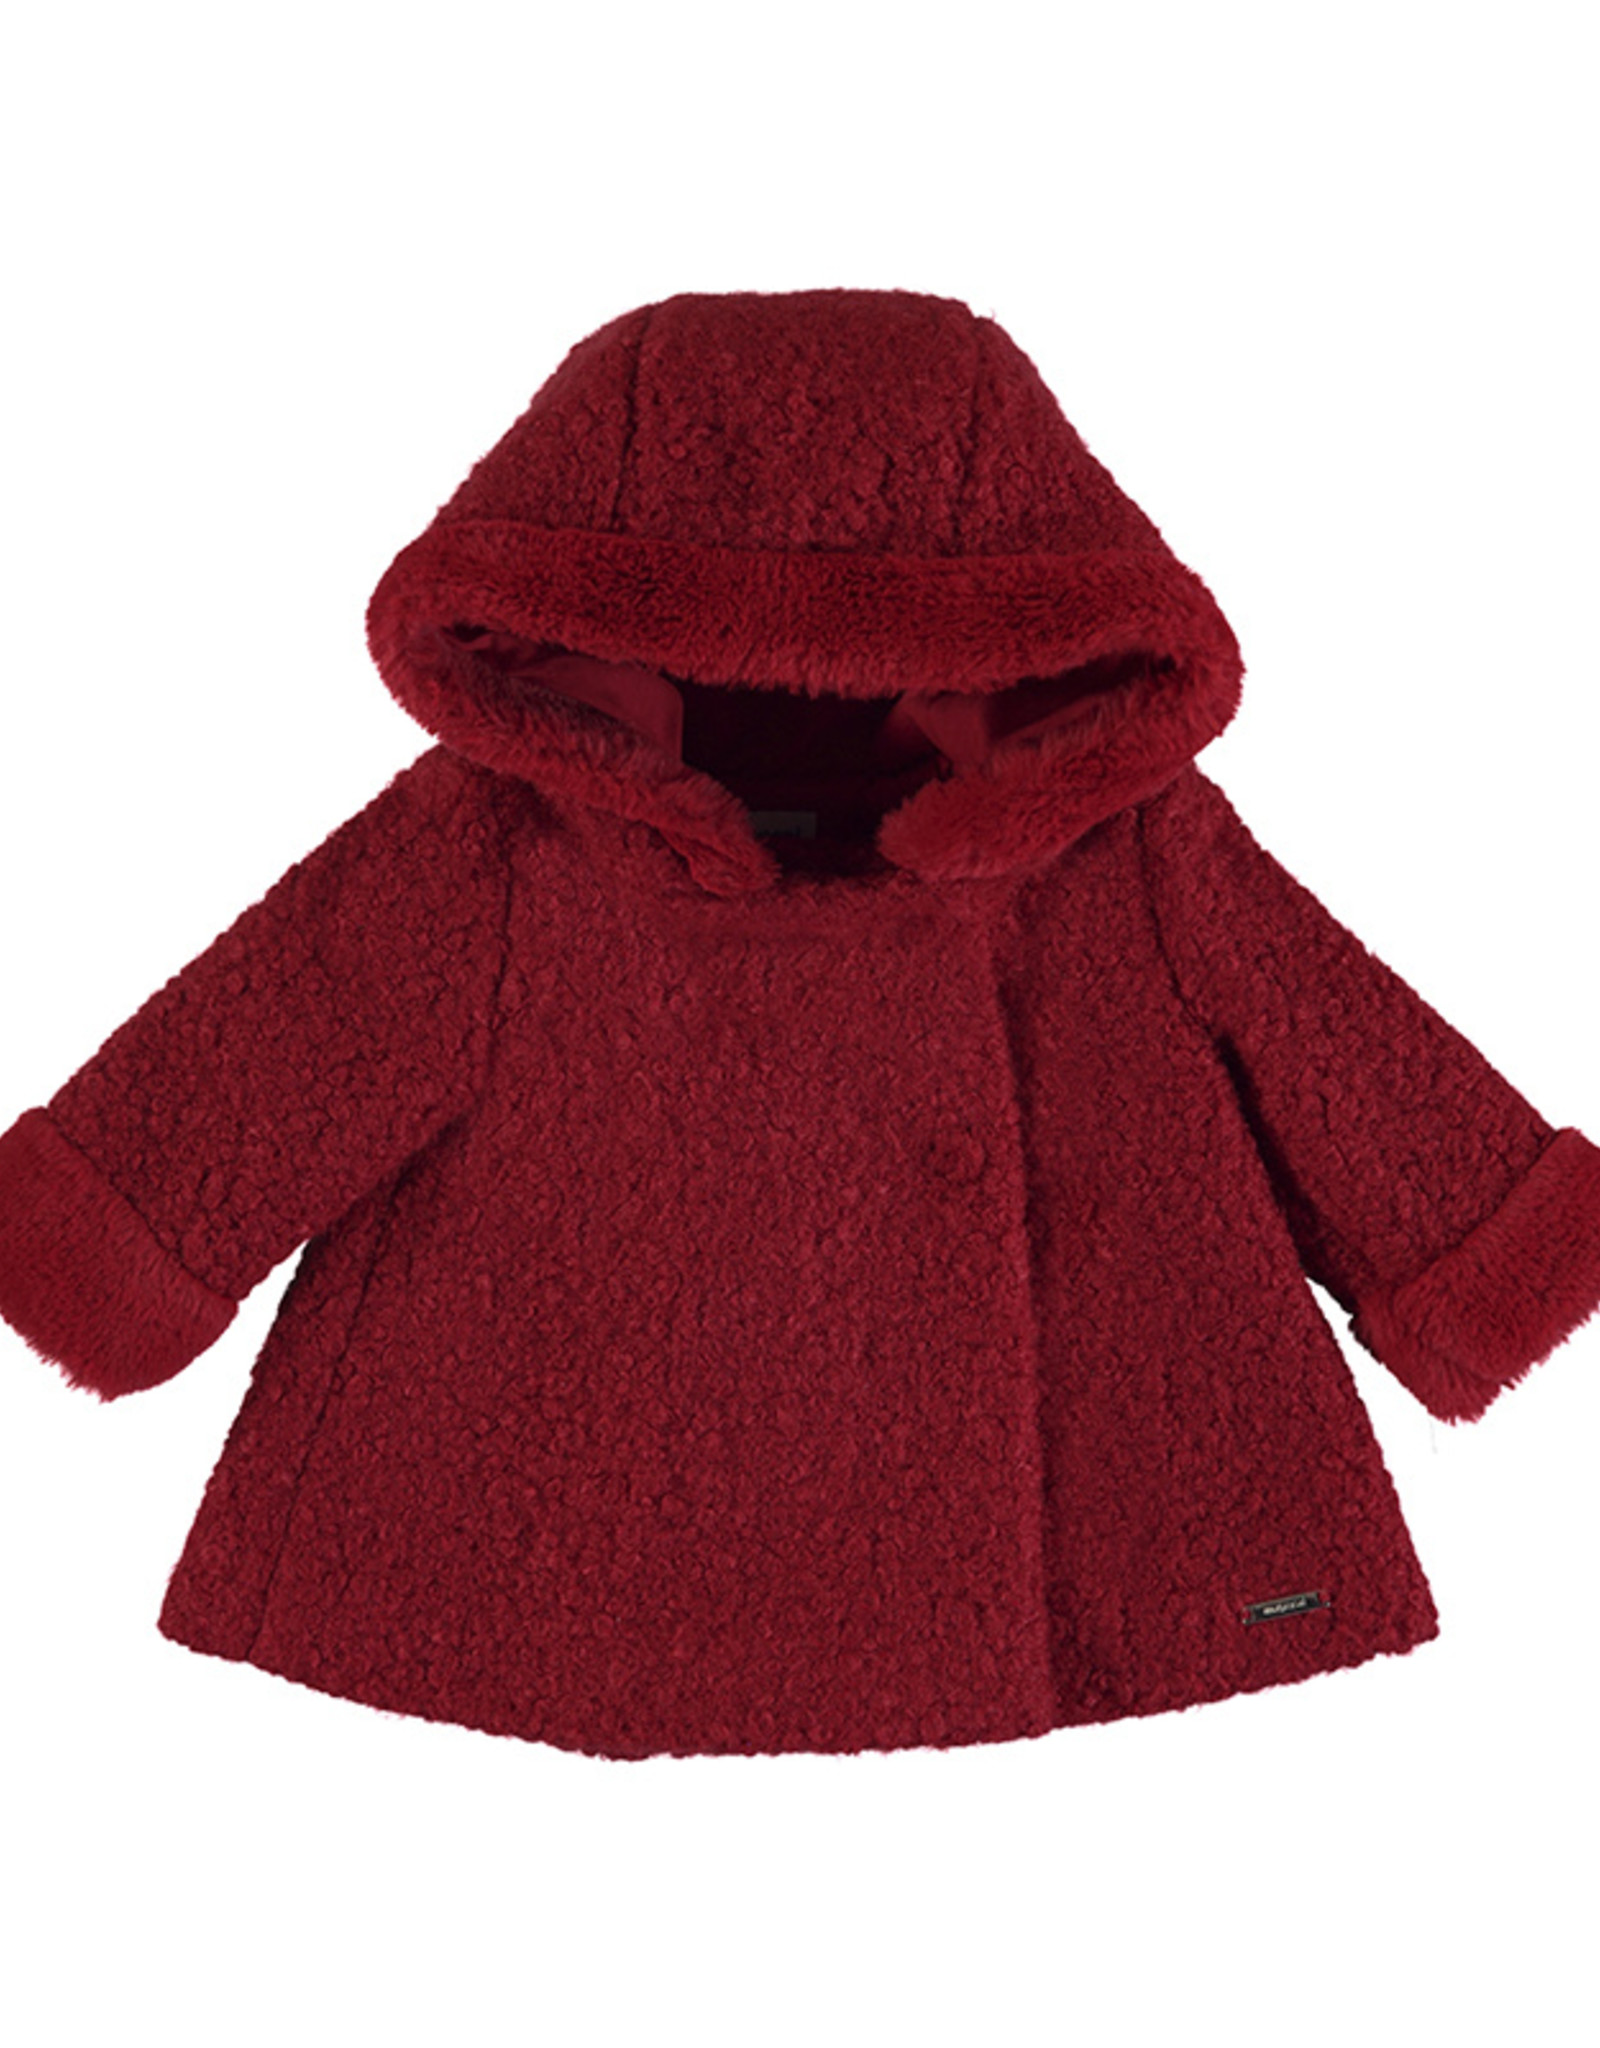 Mayoral Infant Girls Red Boucle Hooded Coat With Fur Cuffs